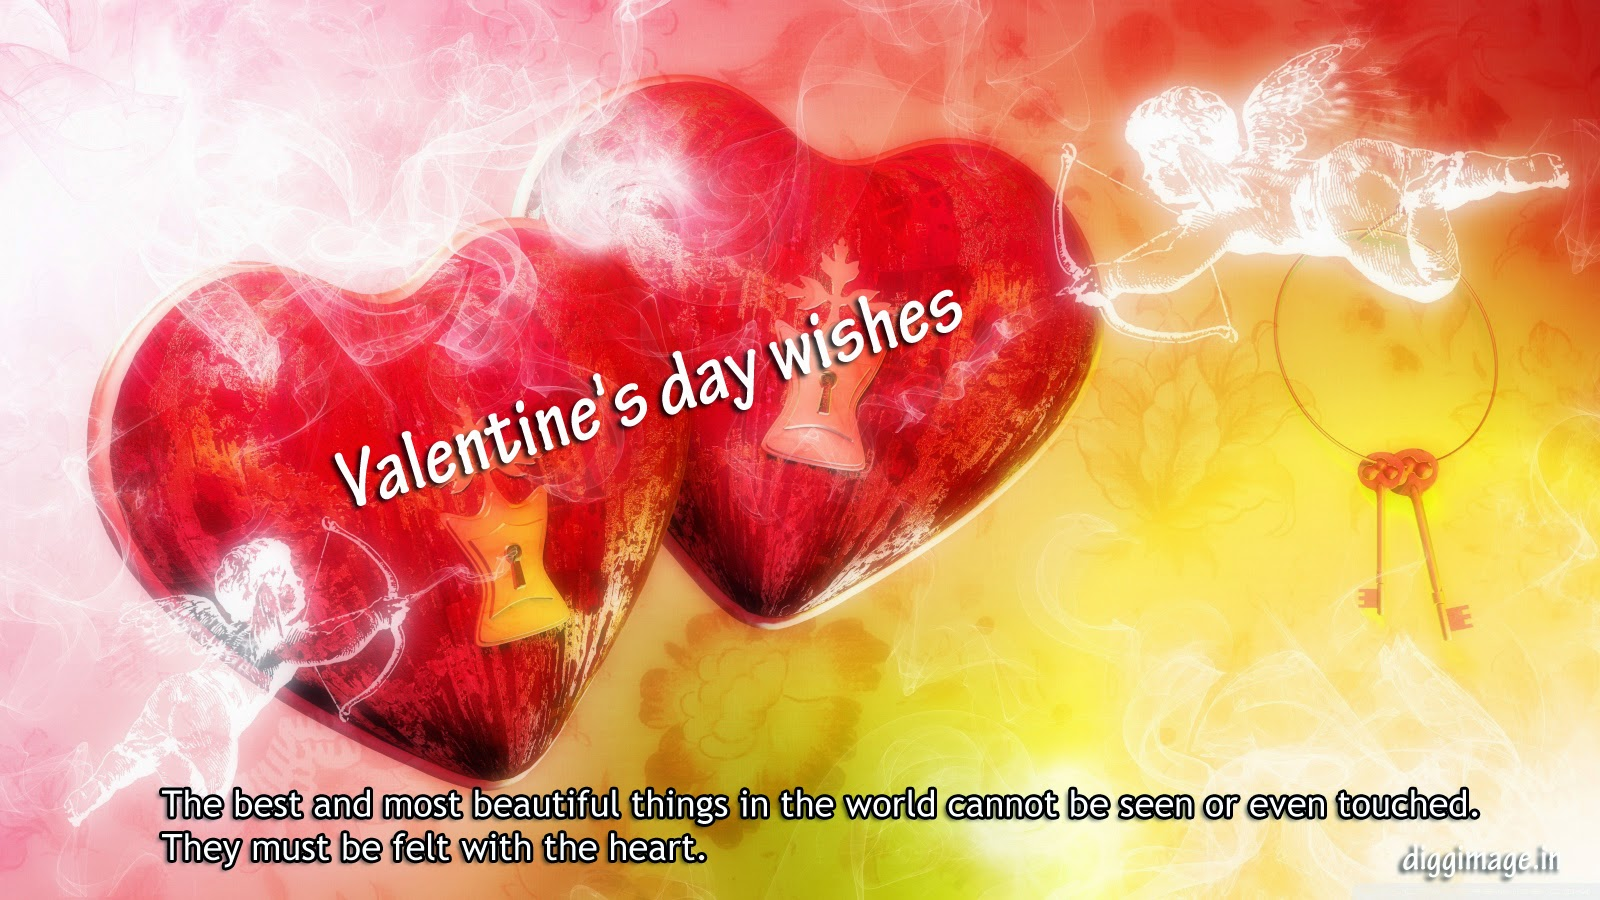 valentine's day wishes, lovely valentine's day wishes, valentine's day wishes for girlfriend, latest happy valentine's day wishes, happy valentine's day wishes 2015, valentine's day greetings, valentine greetings, valentines greetings messages, happy valentines day cards,